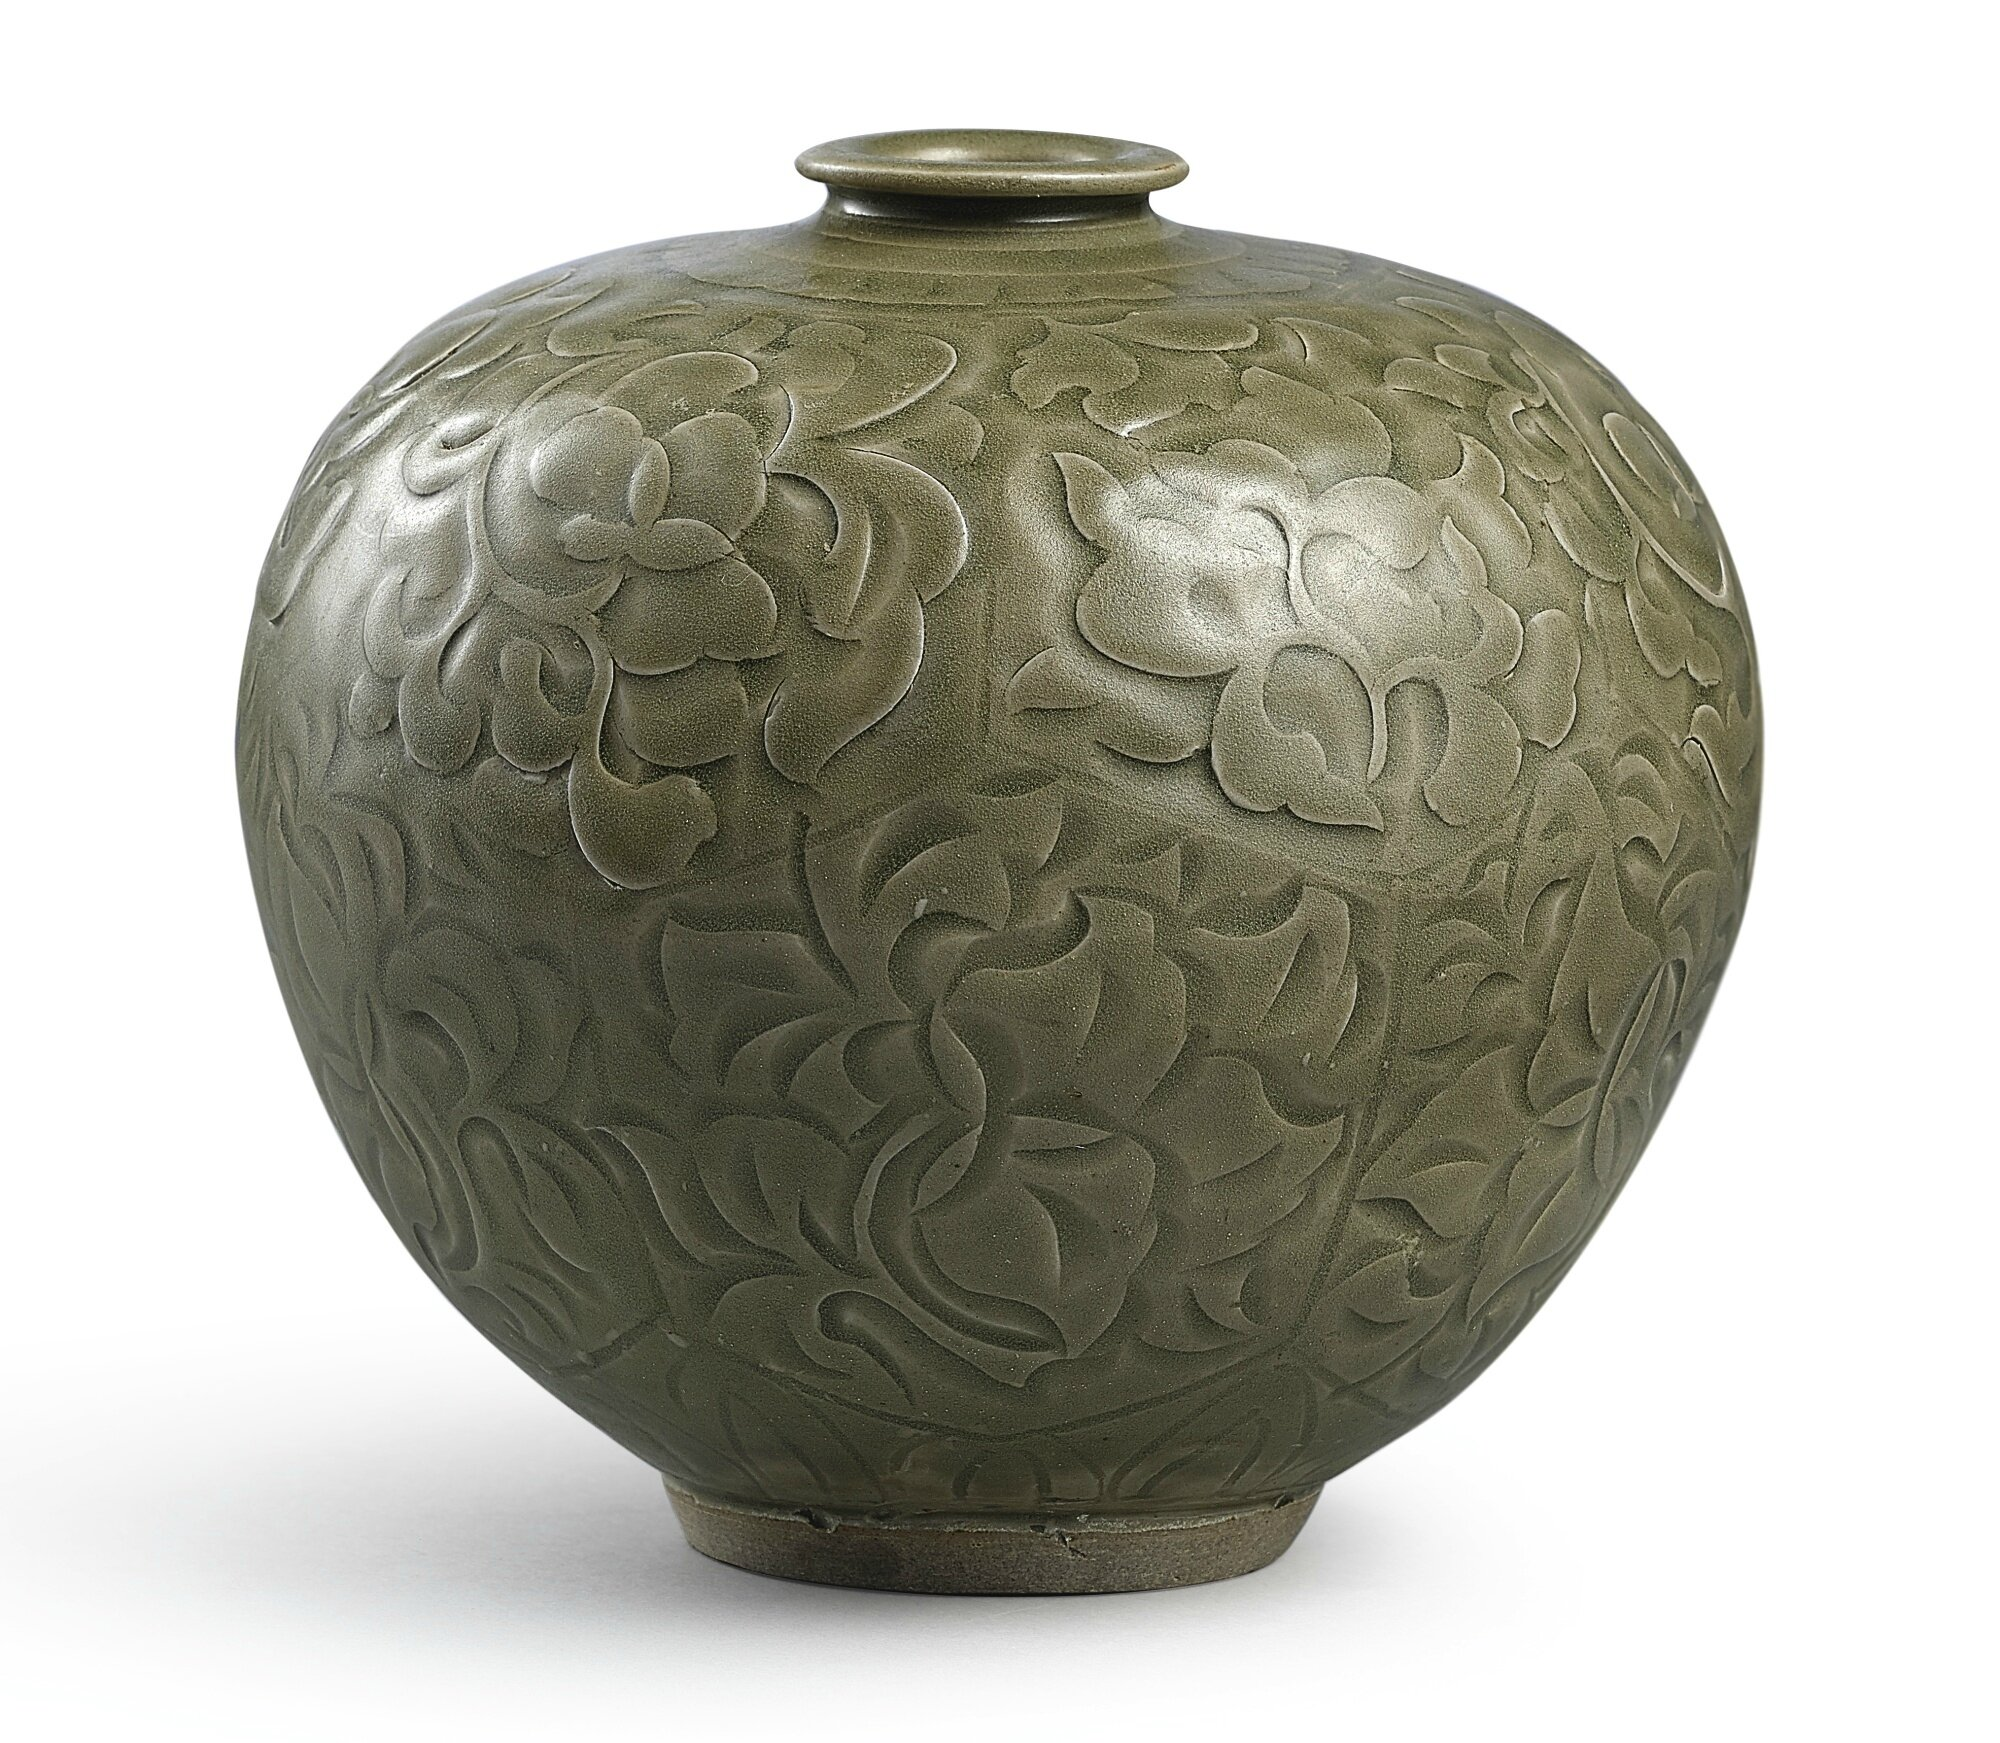 An extremely rare 'Yaozhou' celadon carved 'floral' vase, Northern Song dynasty